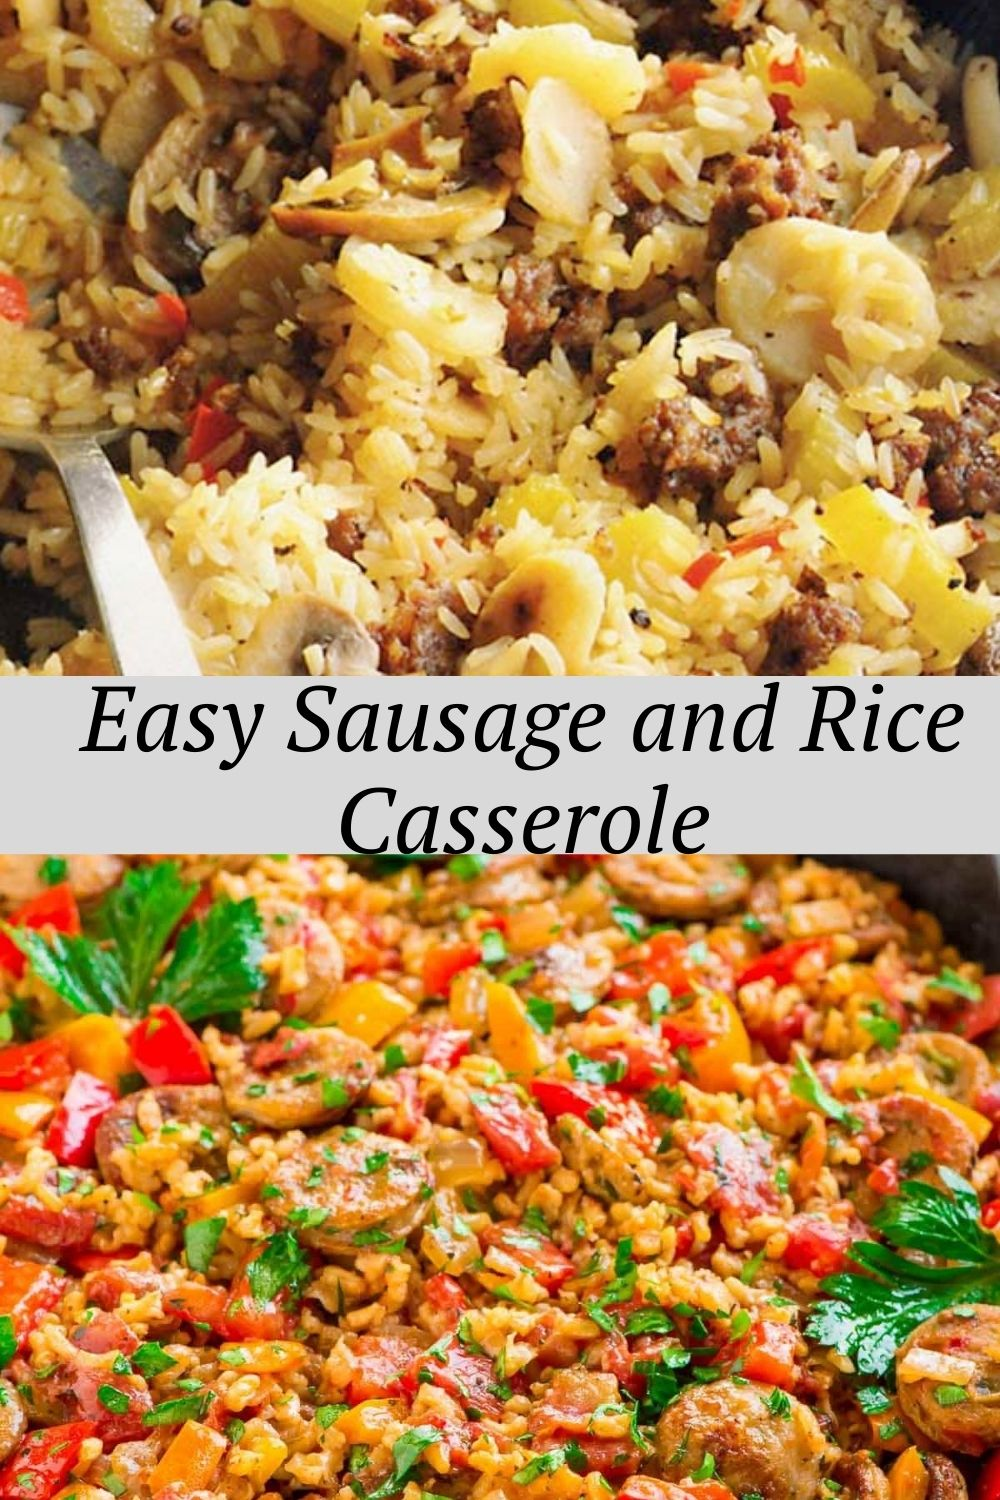 Easy Sausage and Rice Casserole